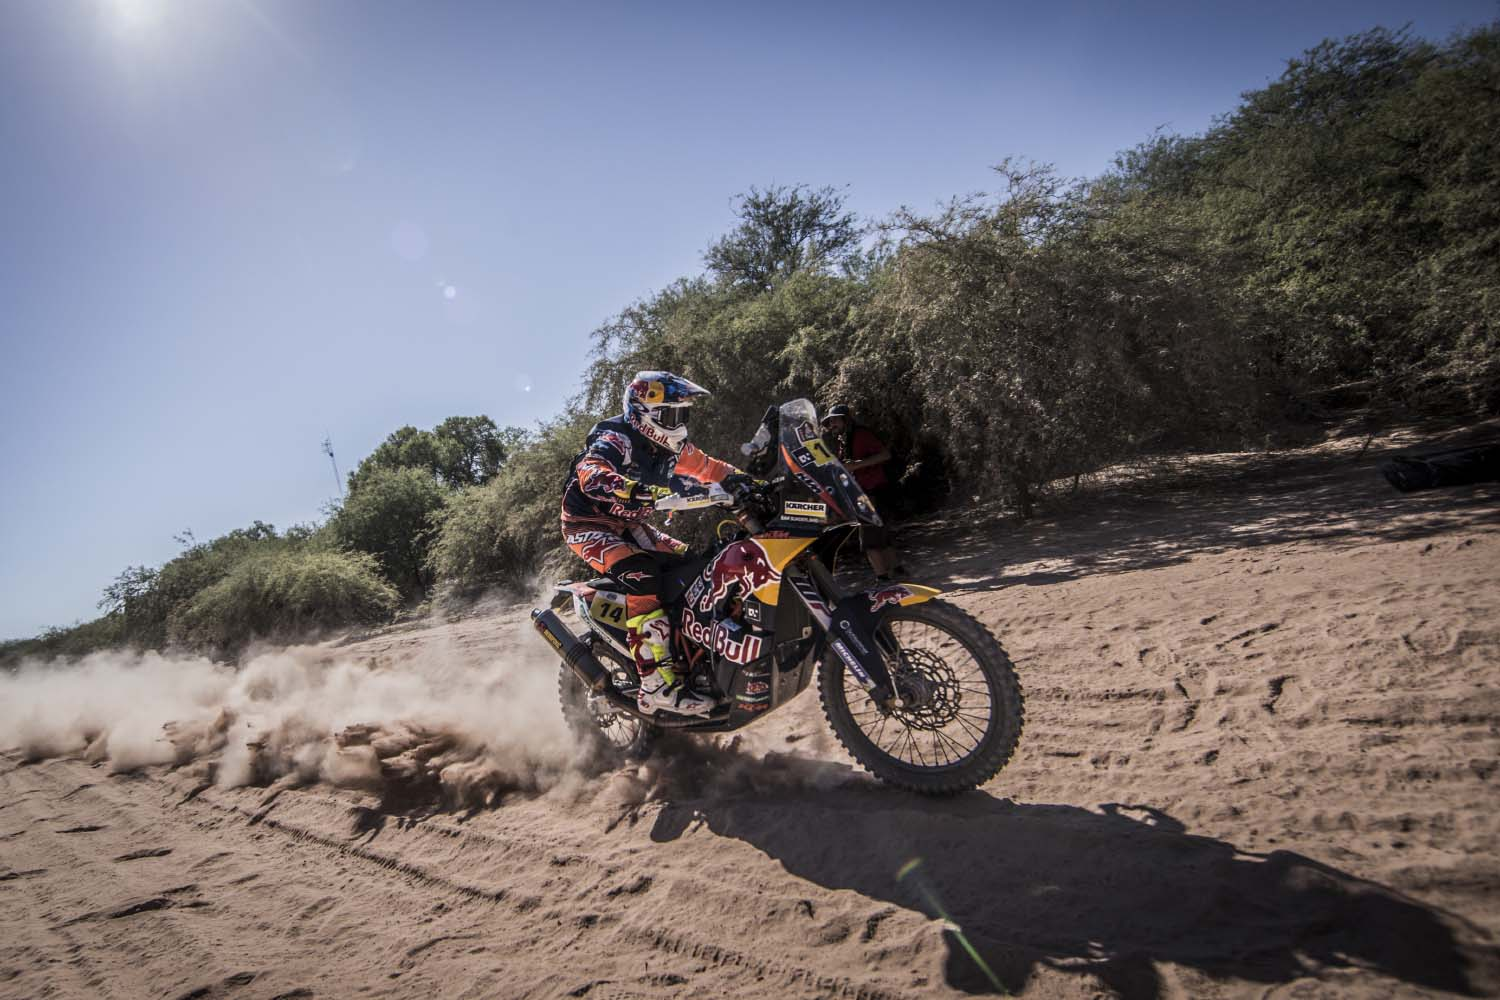 2017 Dakar Rally – Stage 2 Results